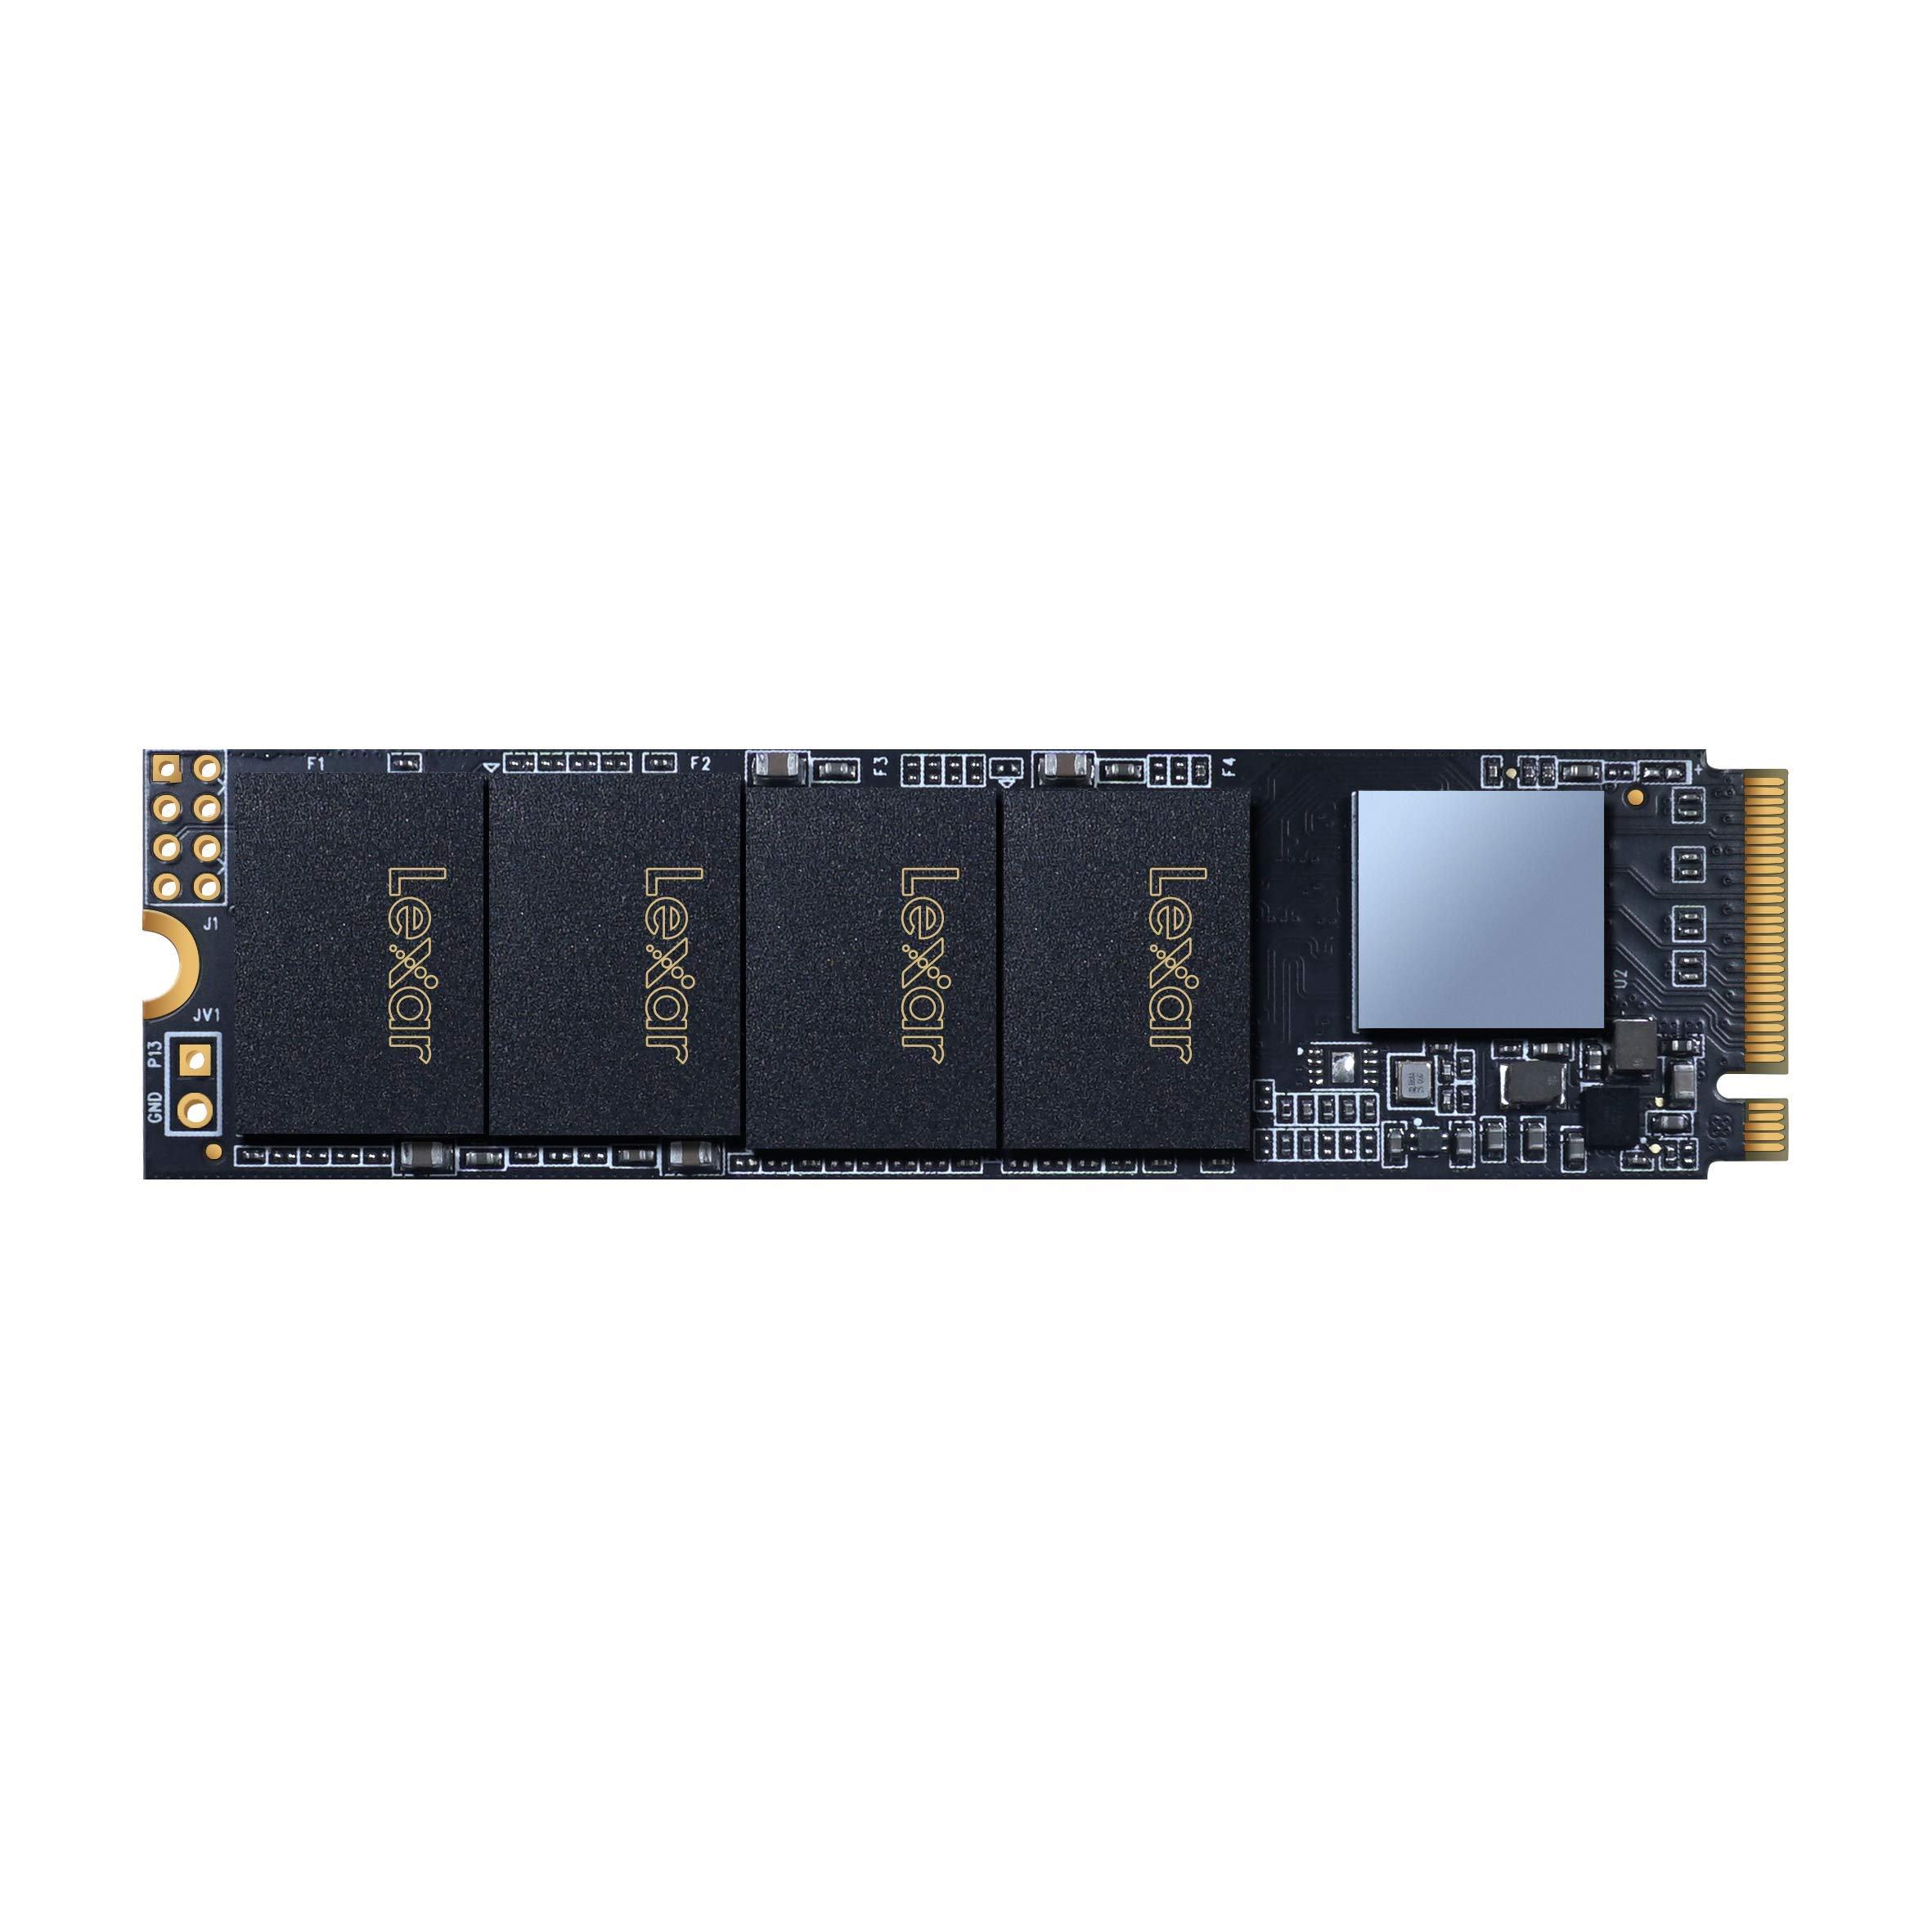 Ssd : Lexar Nm600 M.2 2280 Nvme 240gb Solid-state Drive...